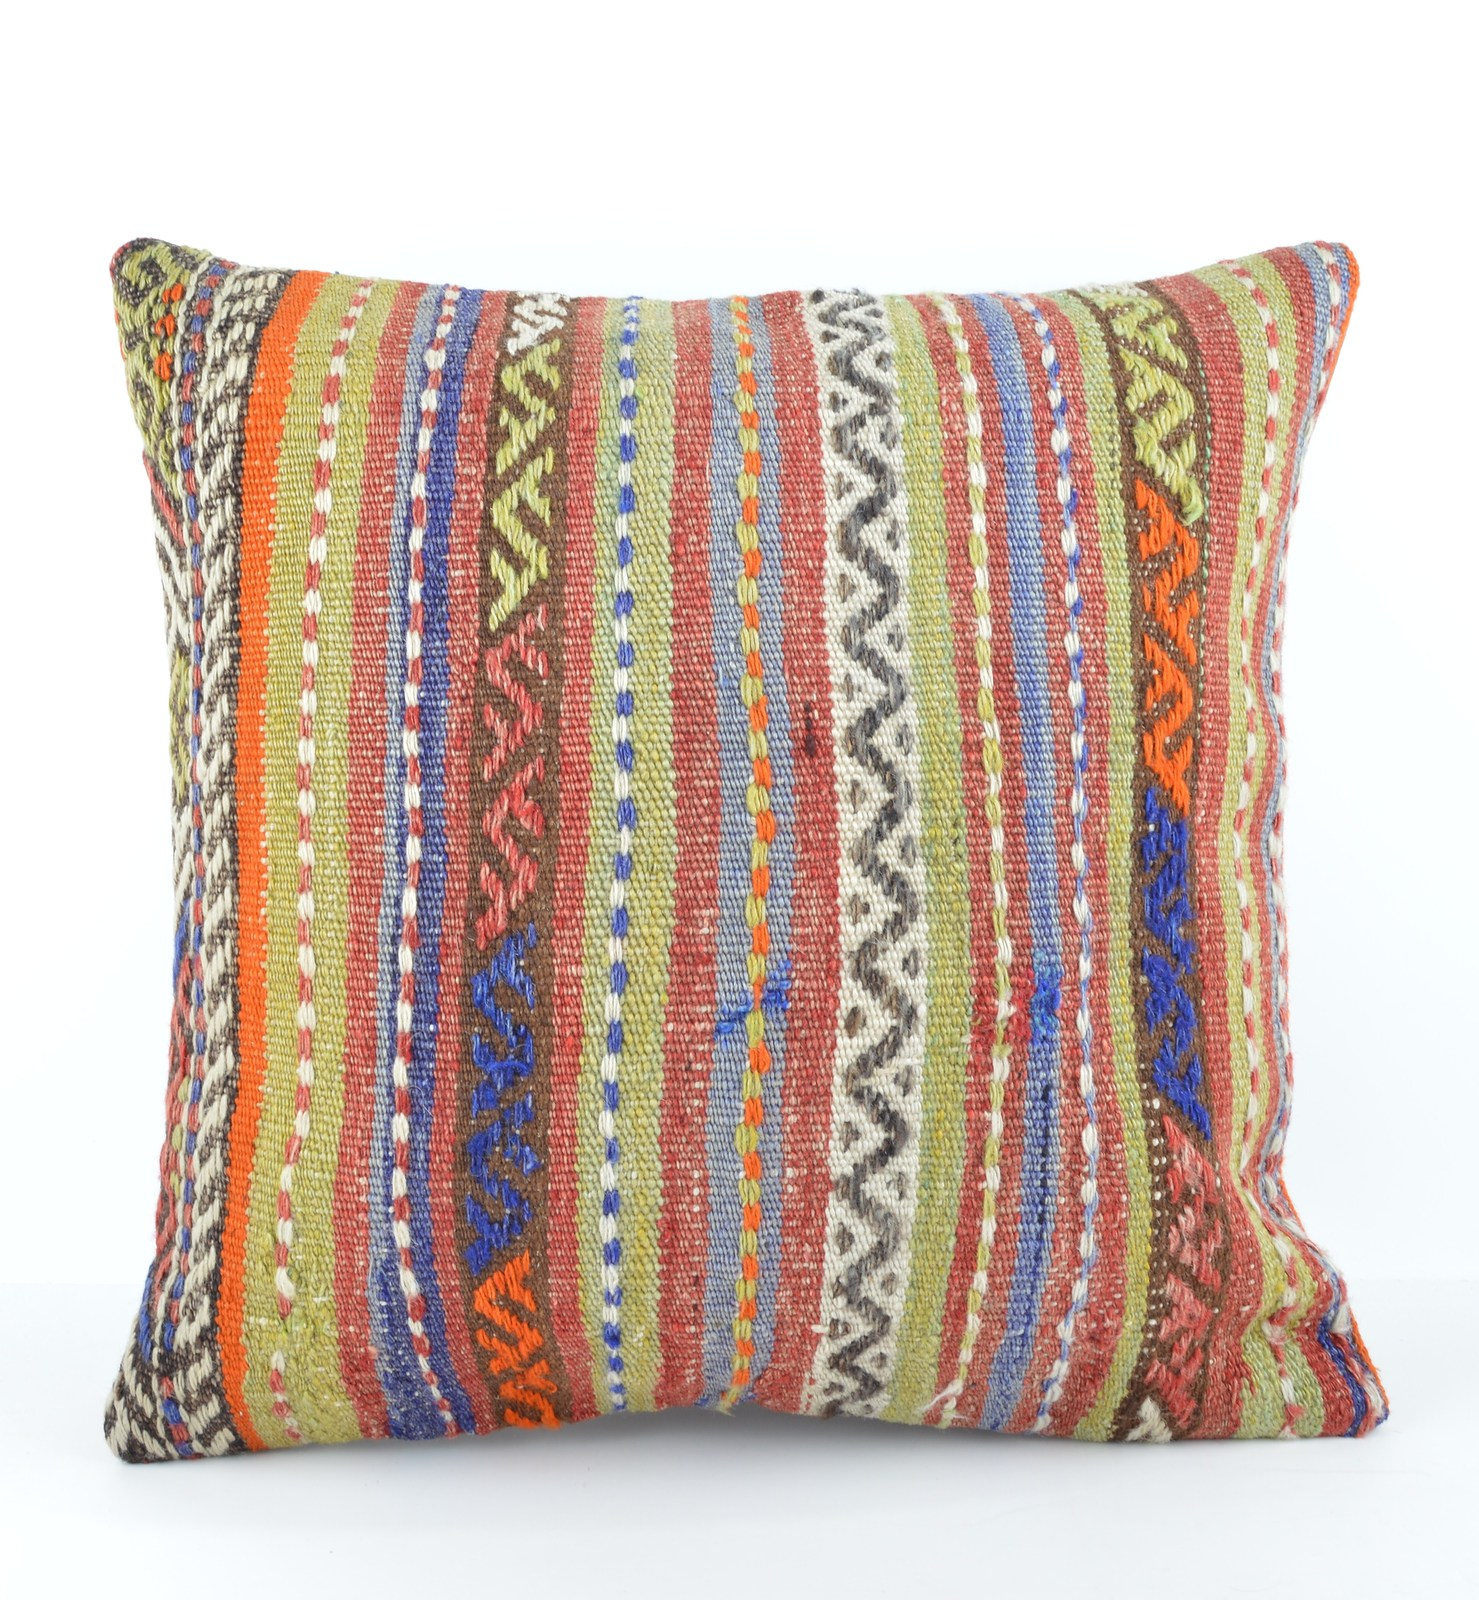 Large Decorative Pillows Floor : embroidered pillow 20x20 decorative pillow bed large floor pillow couch cushion - Pillows